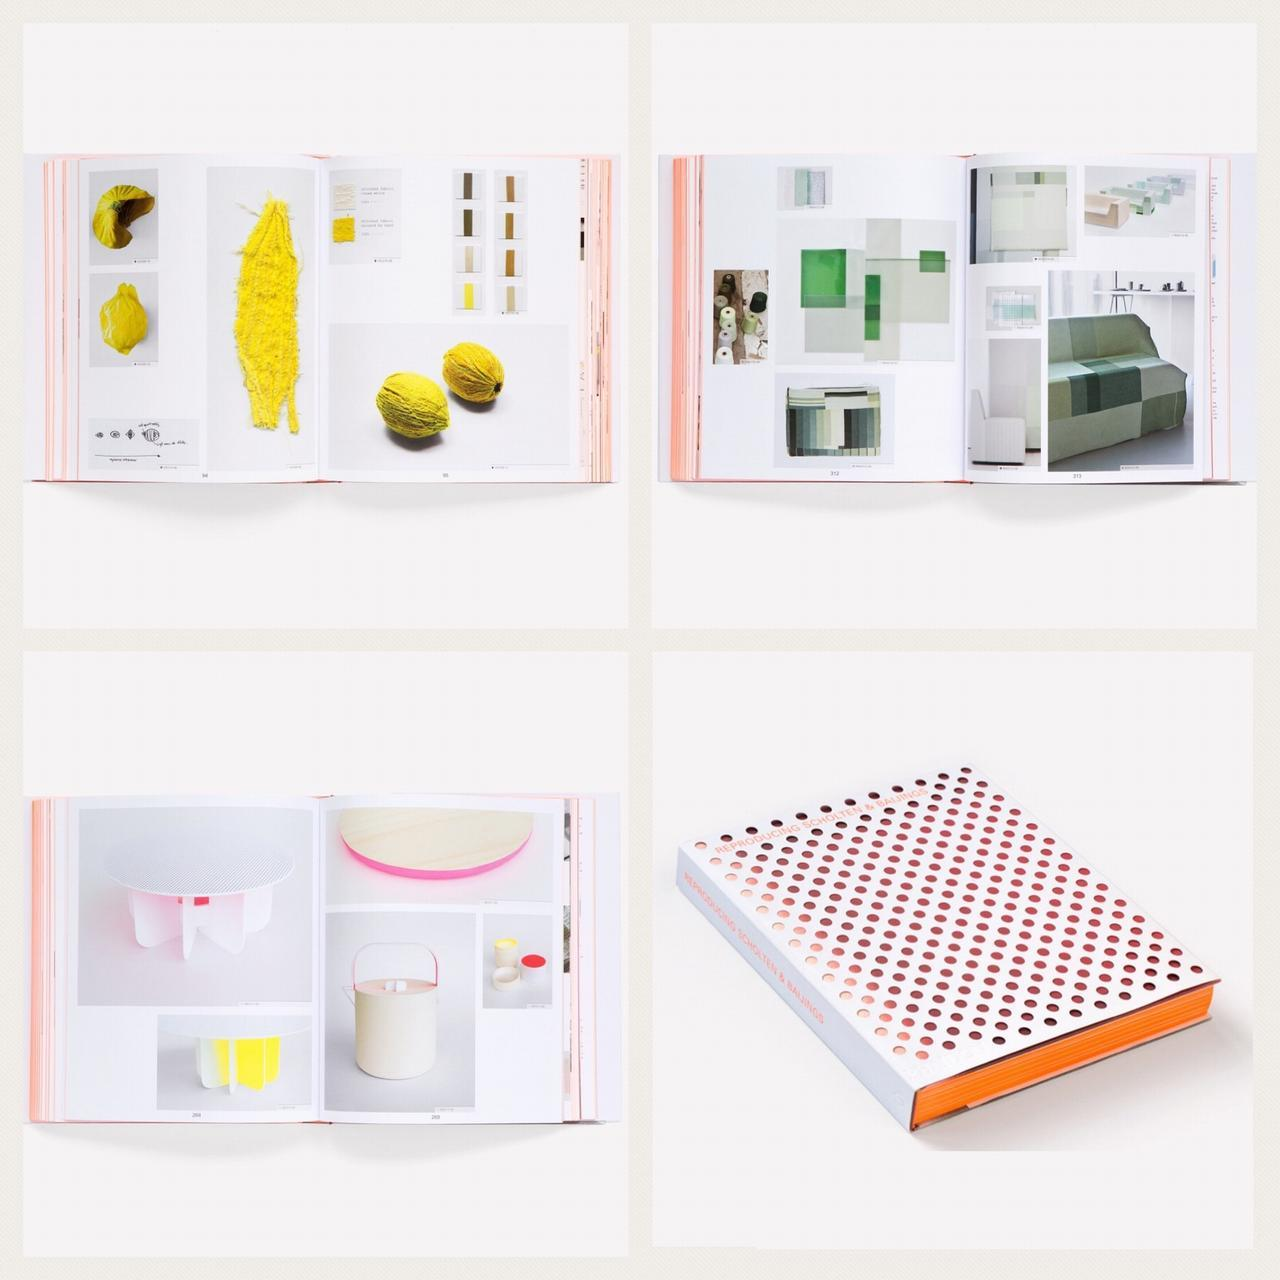 本タイトル「Reproducing Scholten & Baijings by Louise Schouwenberg」